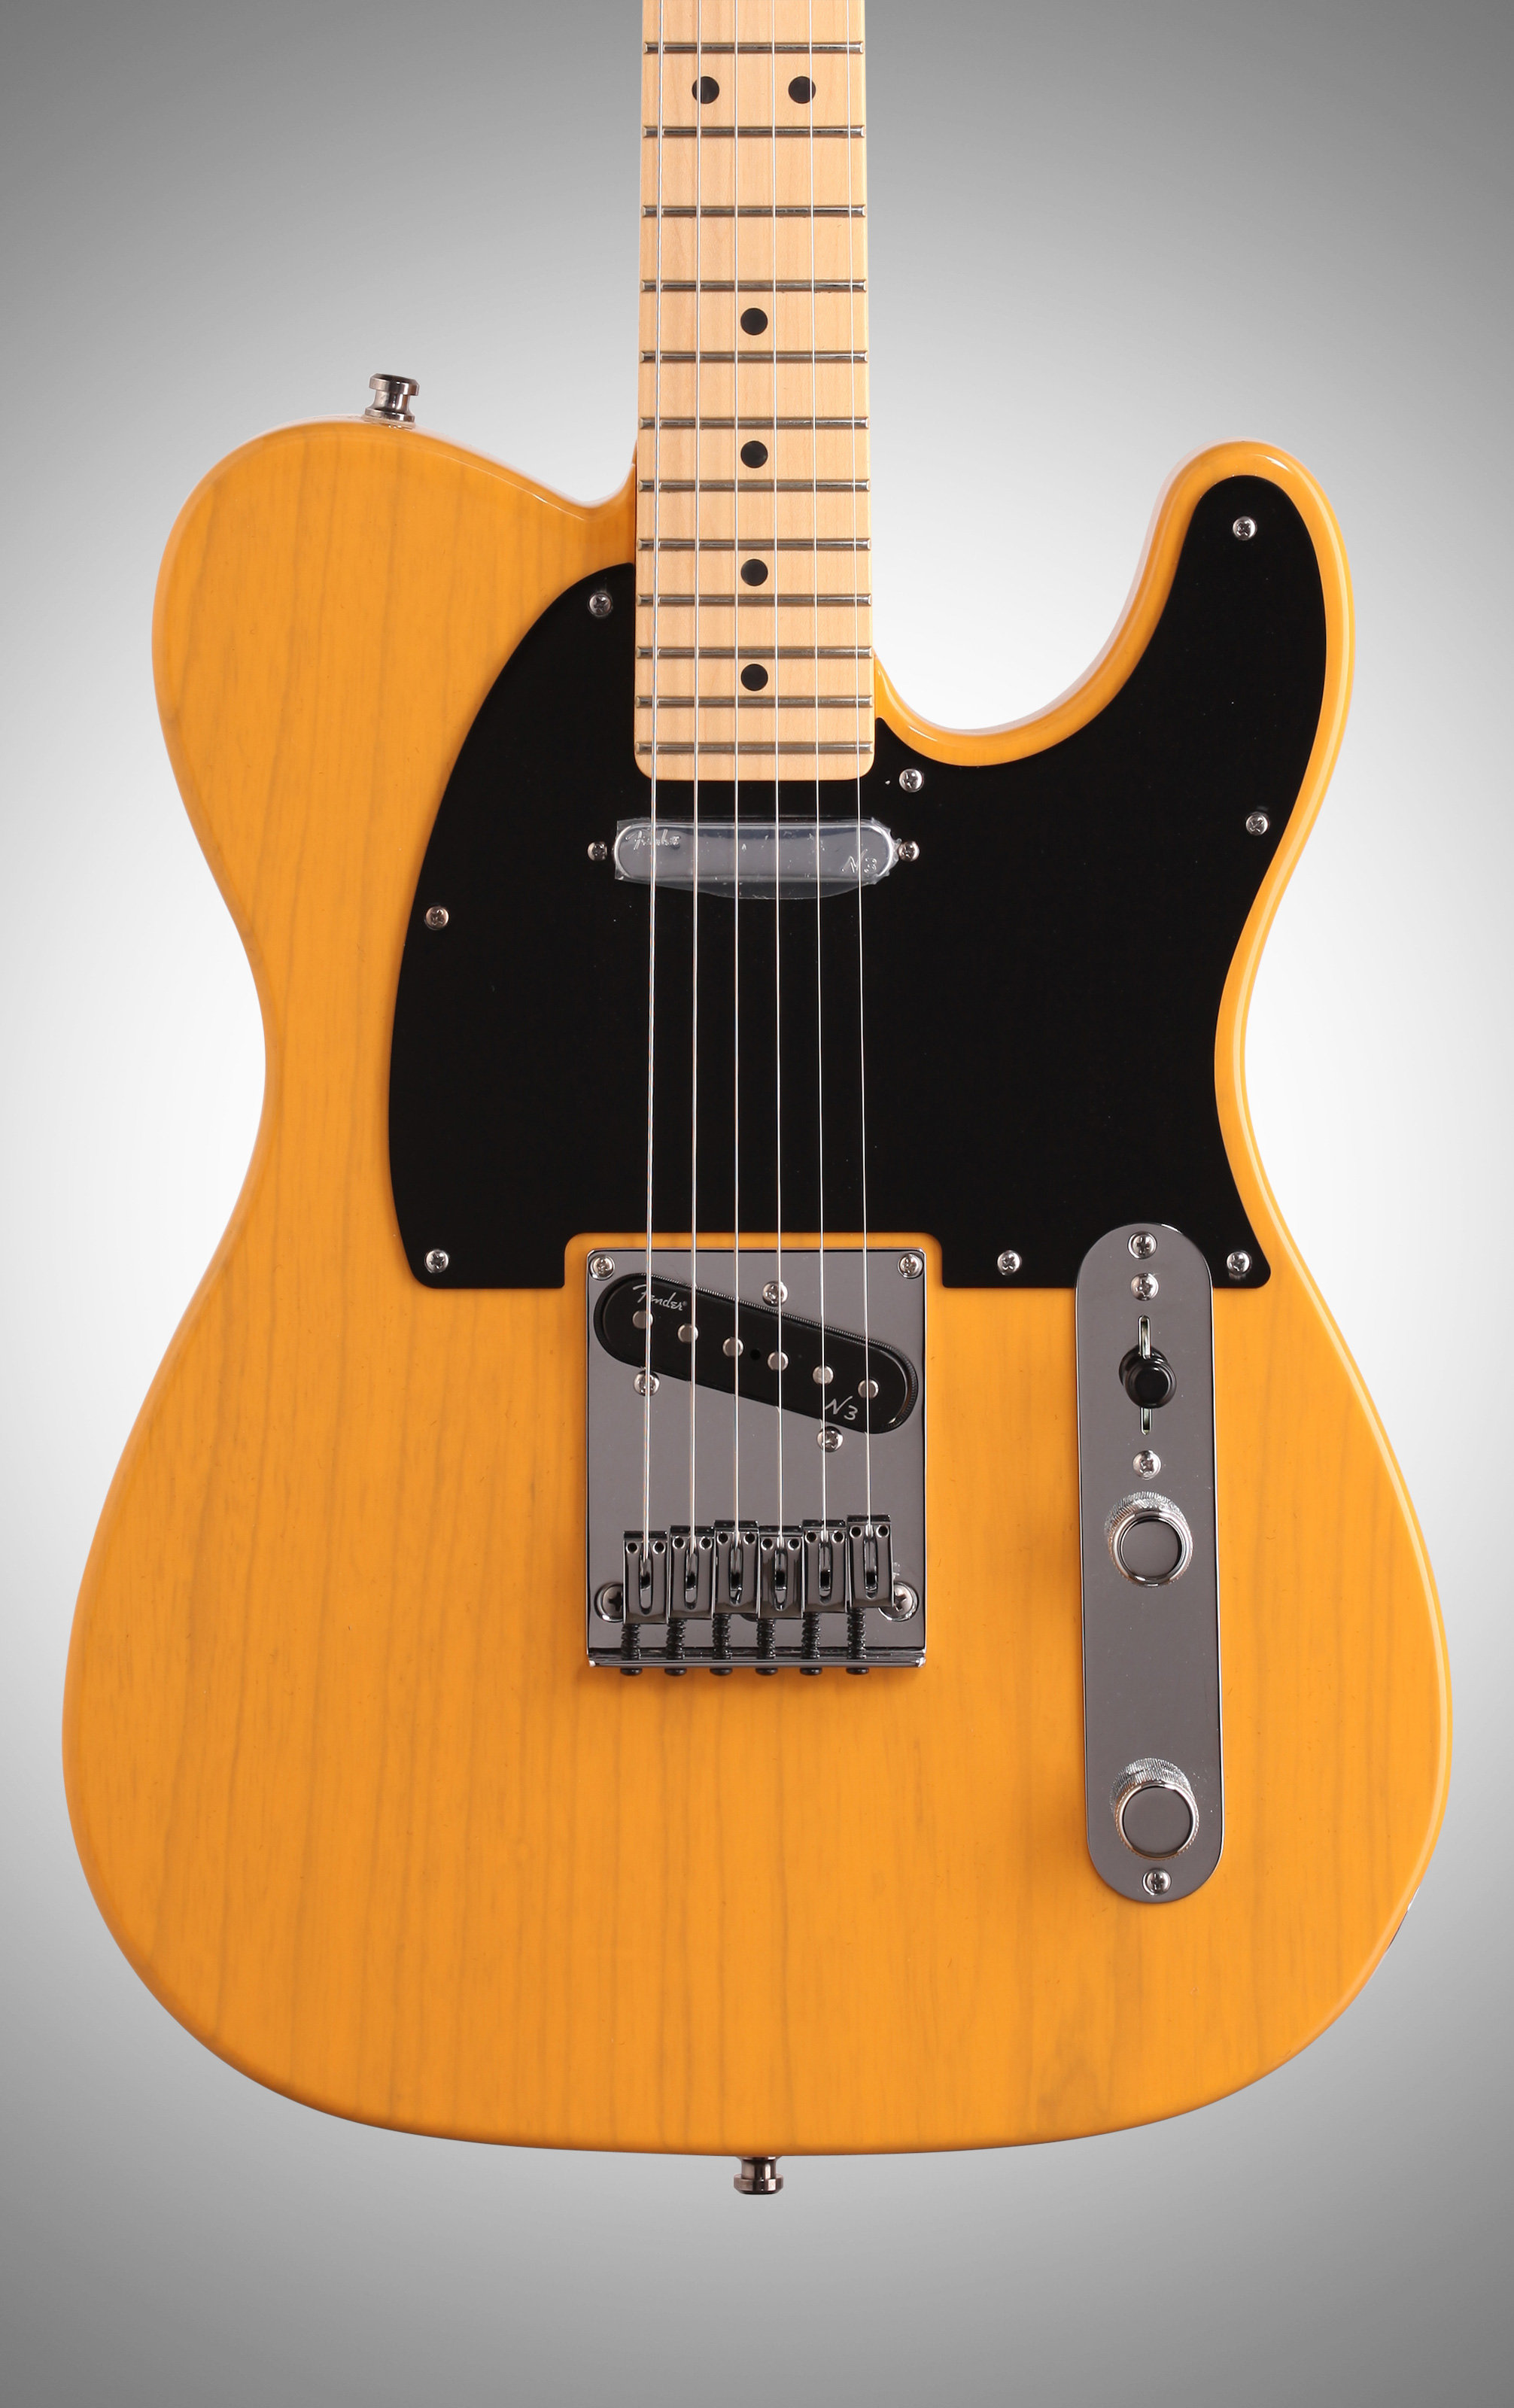 fender telecaster s1 wiring diagram msi motherboard american dlx ash electric guitar zzounds